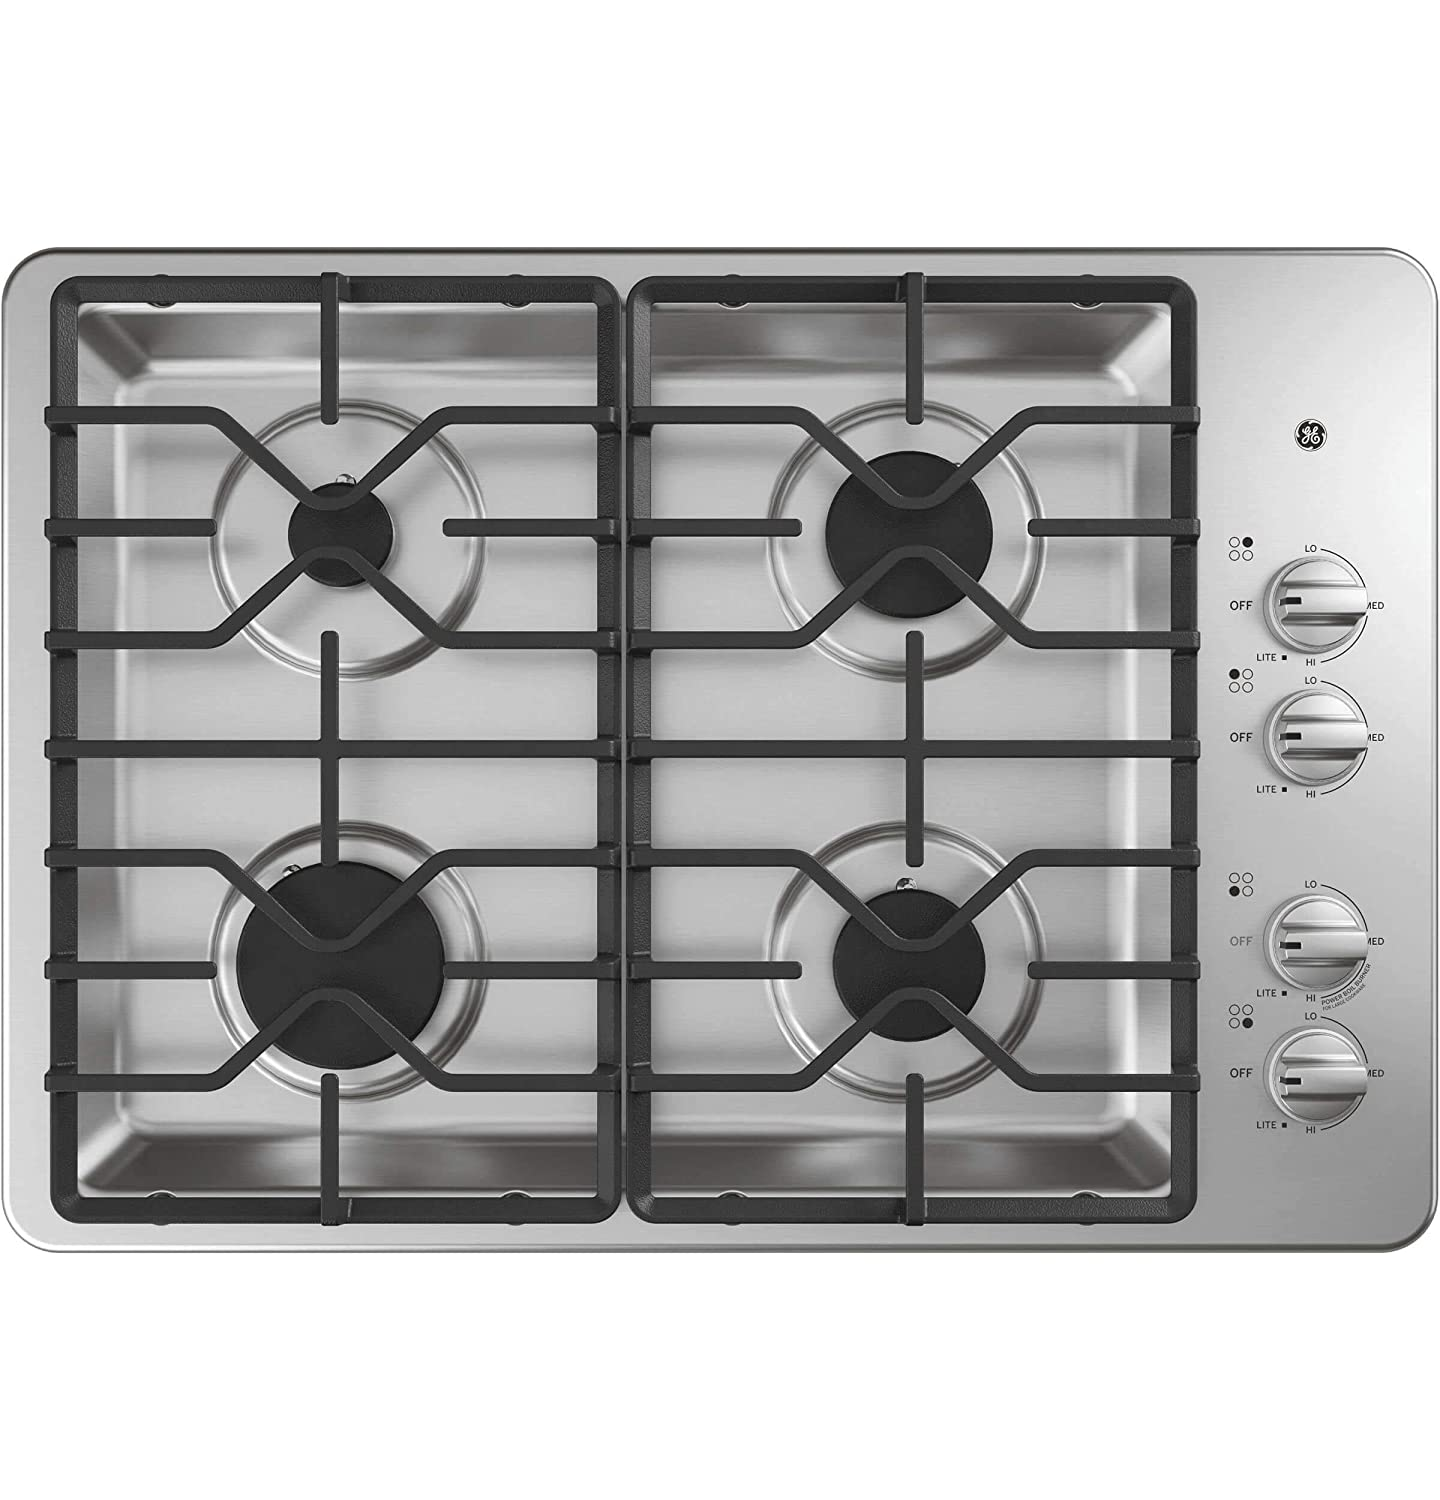 GE JGP3030SLSS 30 Inch Gas Cooktop with MAX System, Power Broil, Simmer, Continuous Grates, Sealed Burners and ADA Compliant (Certified Refurbished)